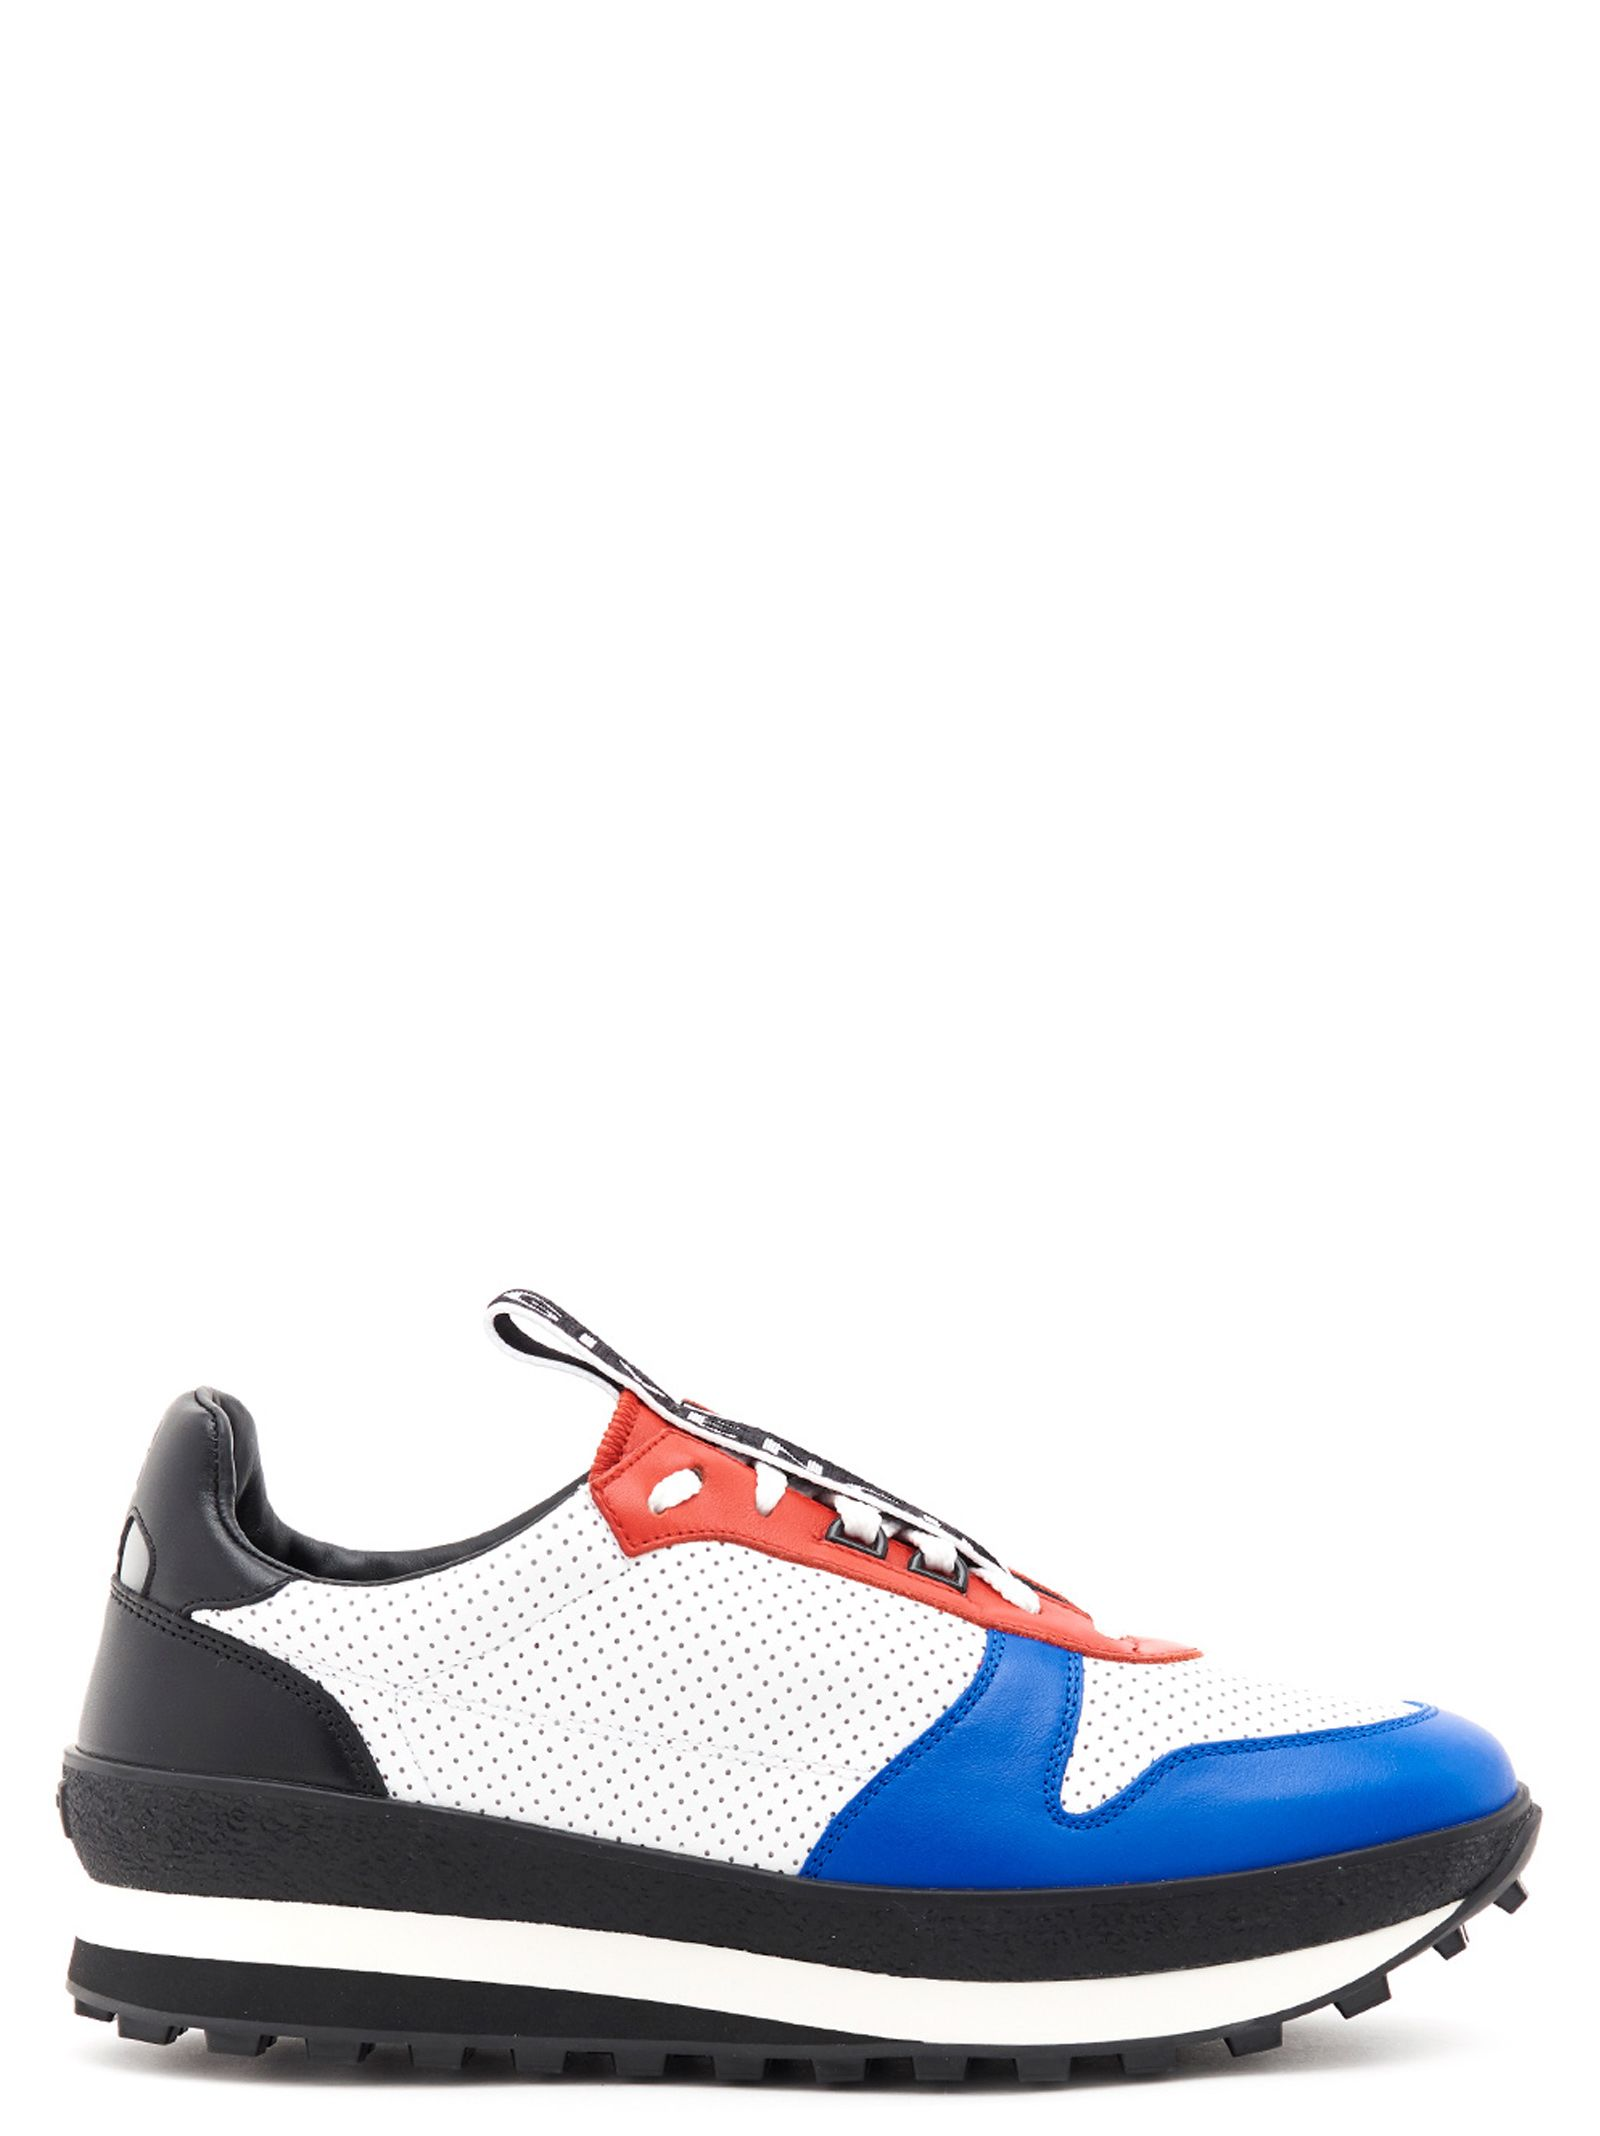 Givenchy Givenchy Shoes - Multicolor - 10789614   italist f1d54d7740